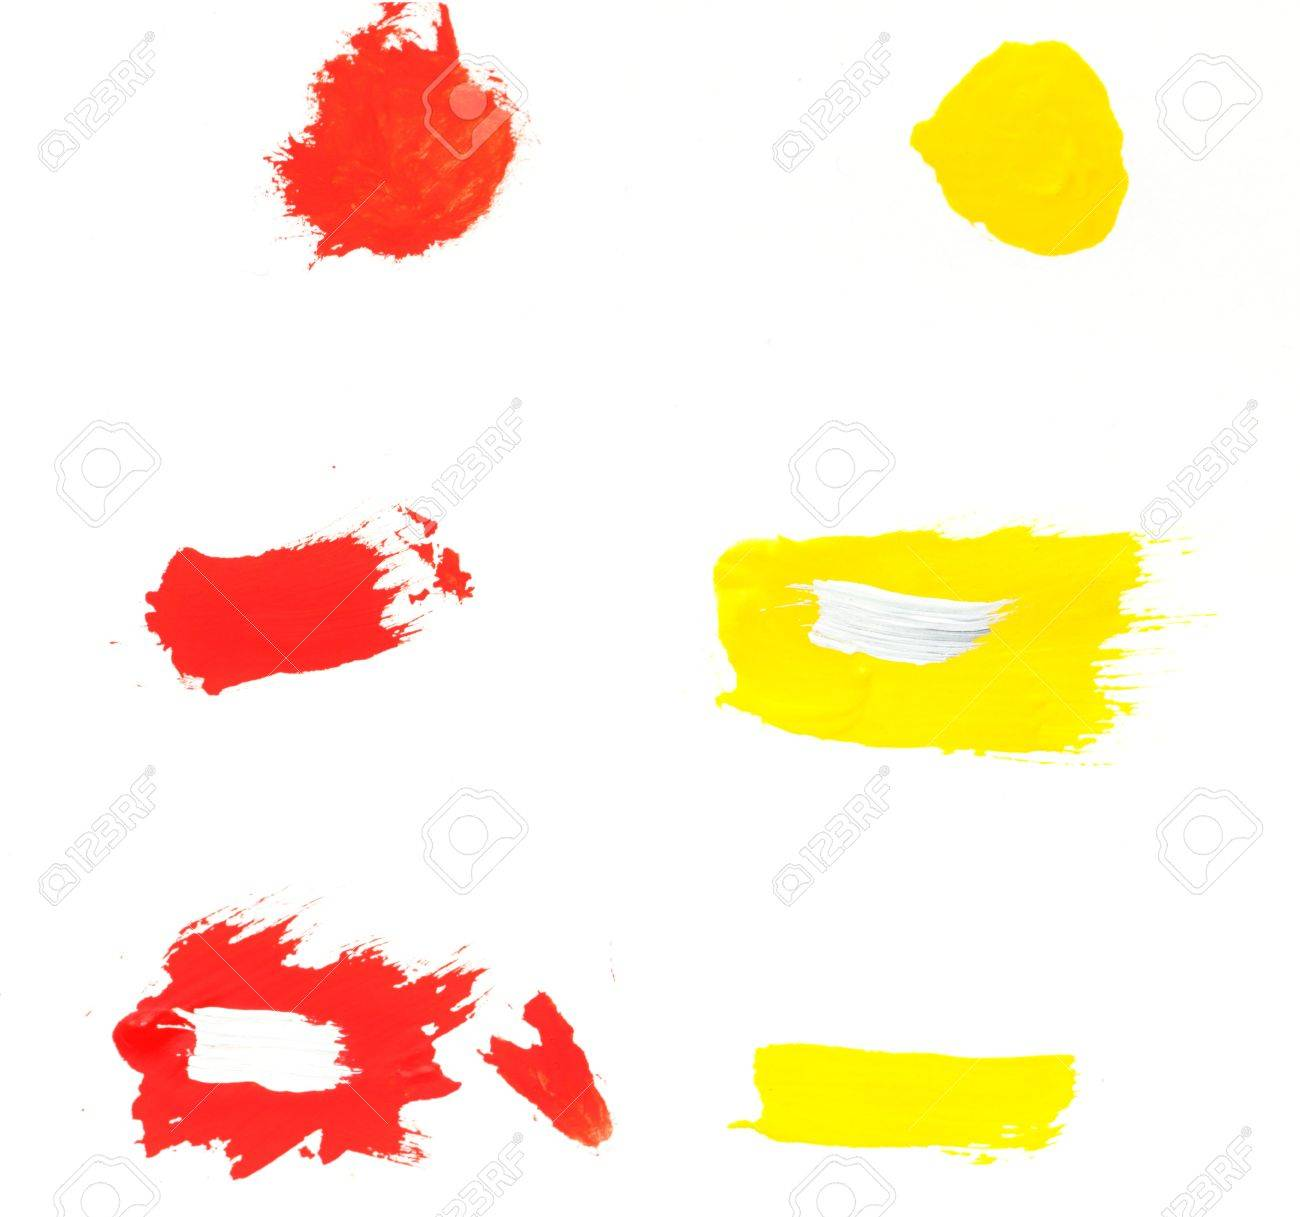 Paint dabs. Stock Photo - 17872960